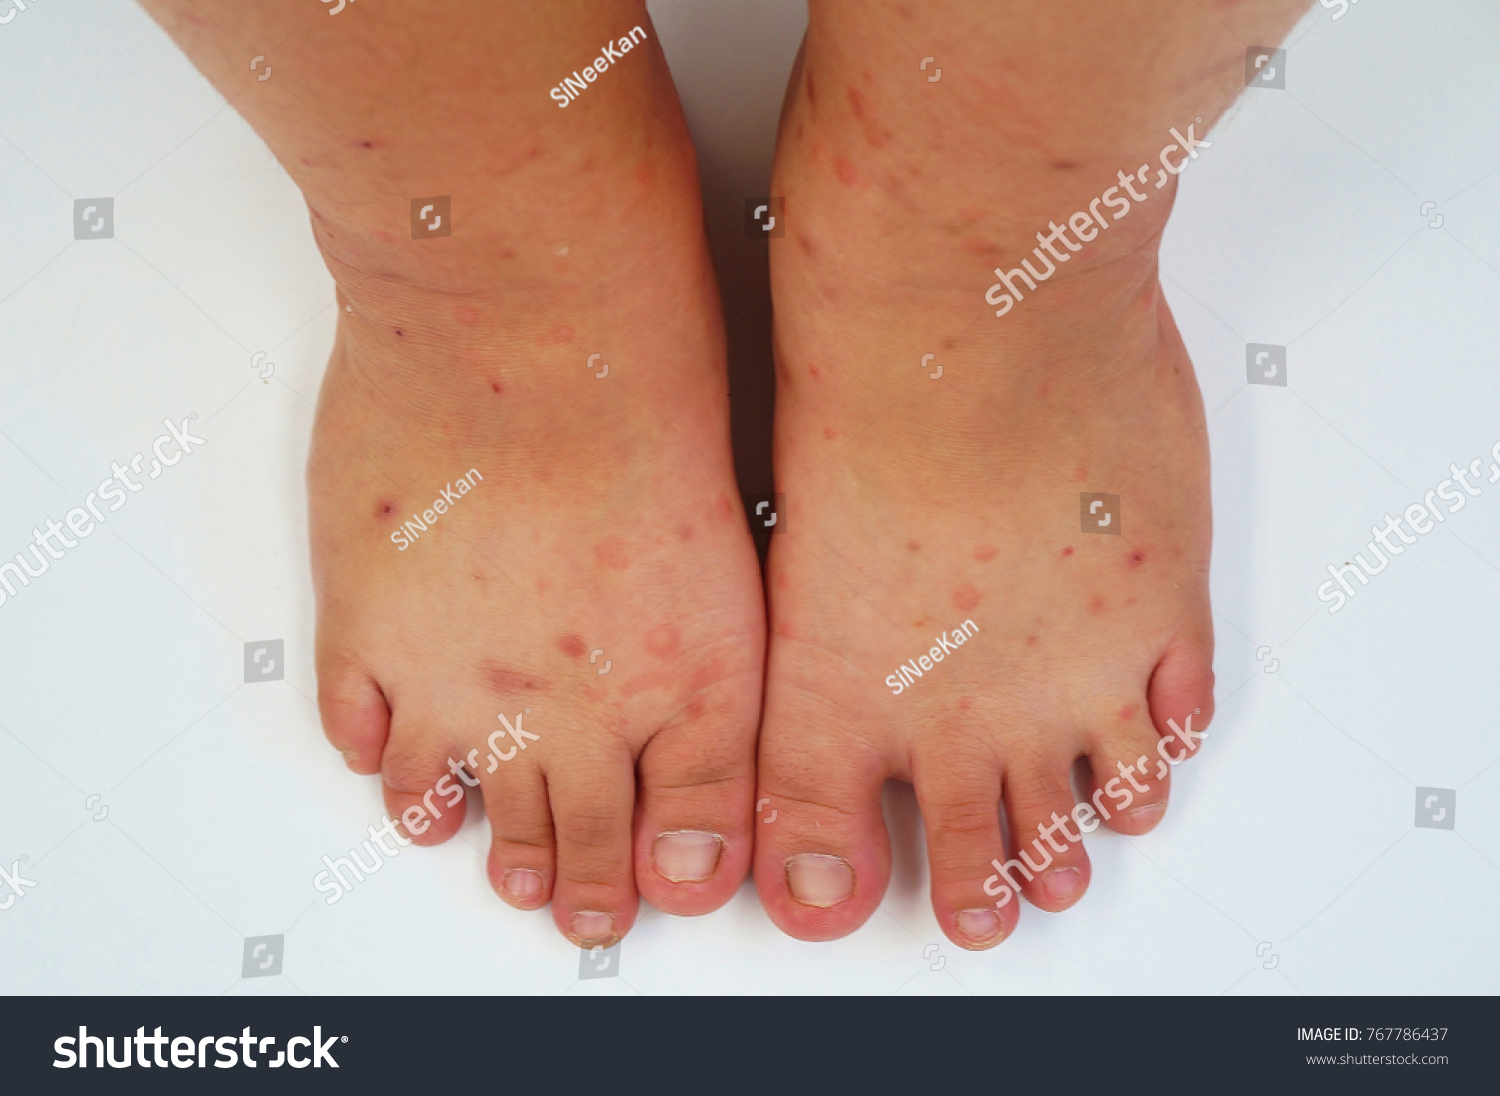 Legs Many Mosquito Bites Sore Scar Stock Photo (Royalty Free ...